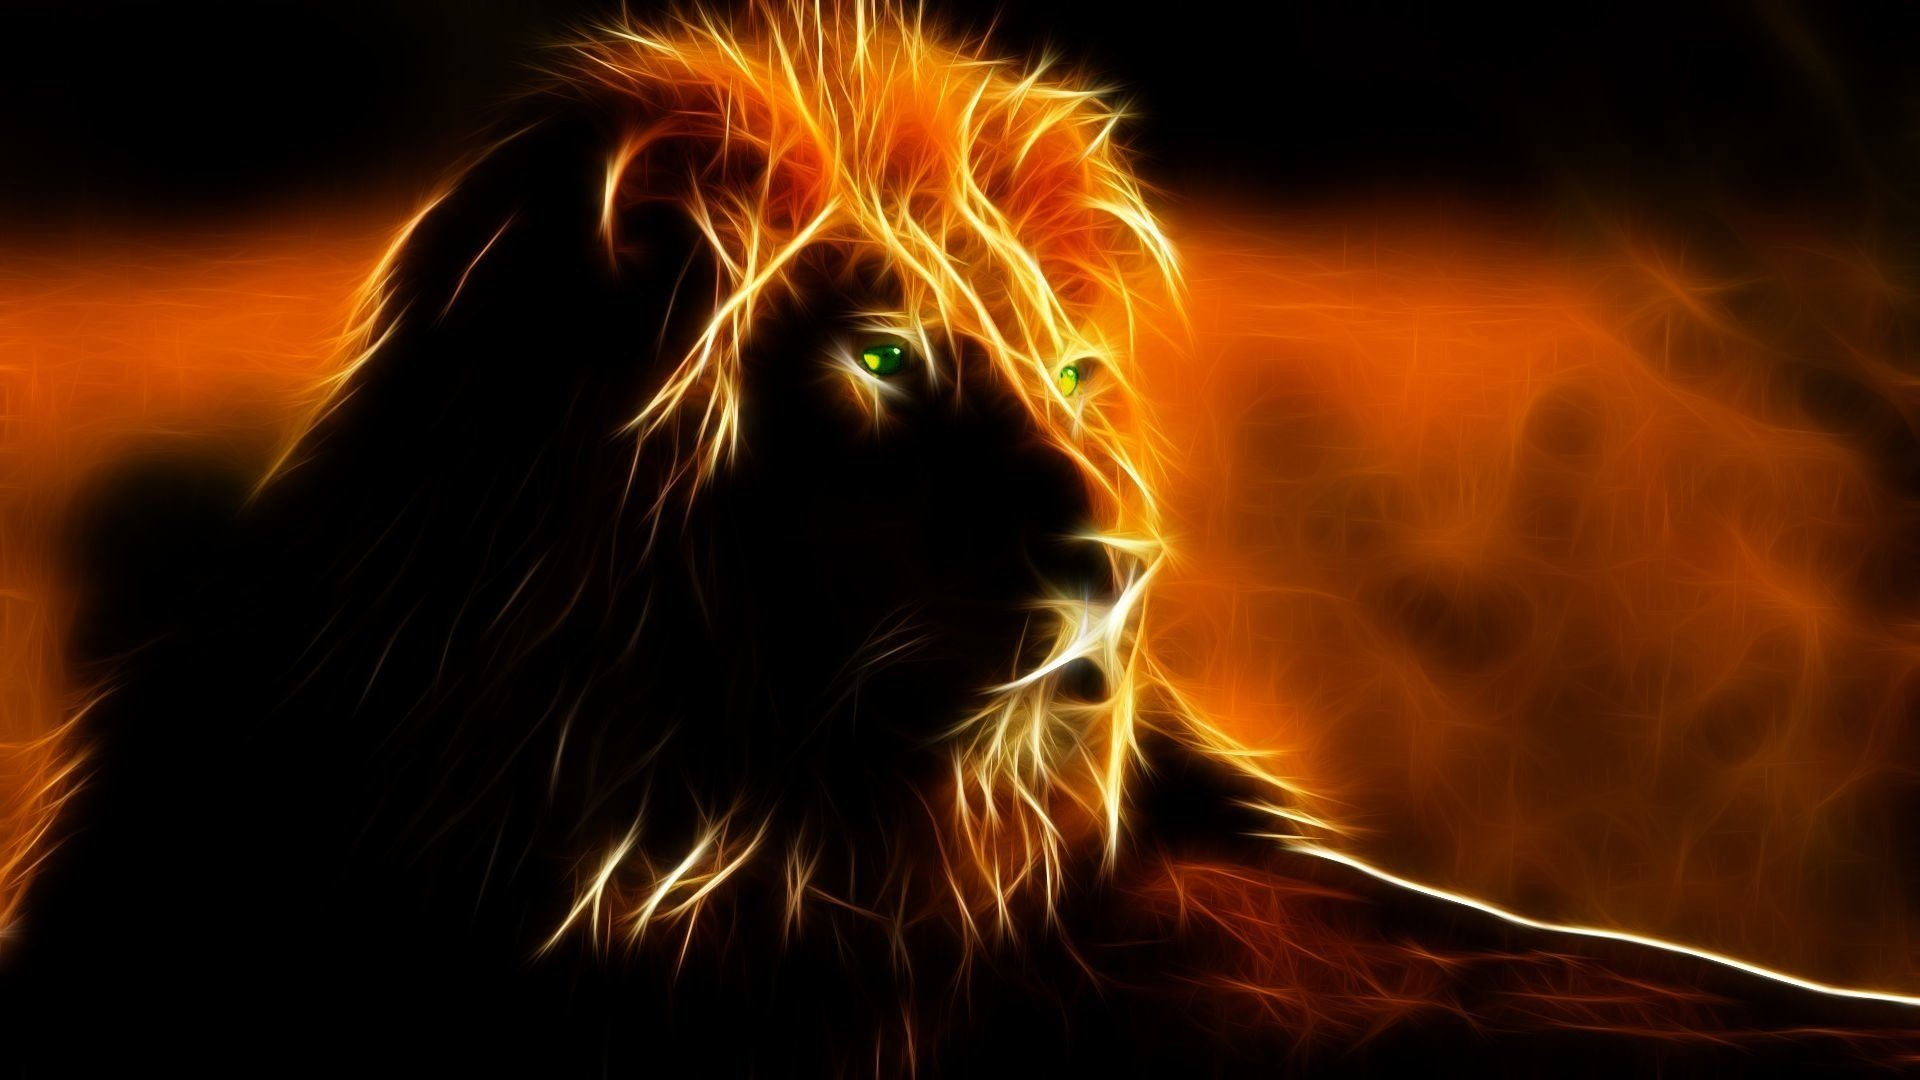 3d Angel Wallpapers Free Fire Lion Wallpapers 183 ①